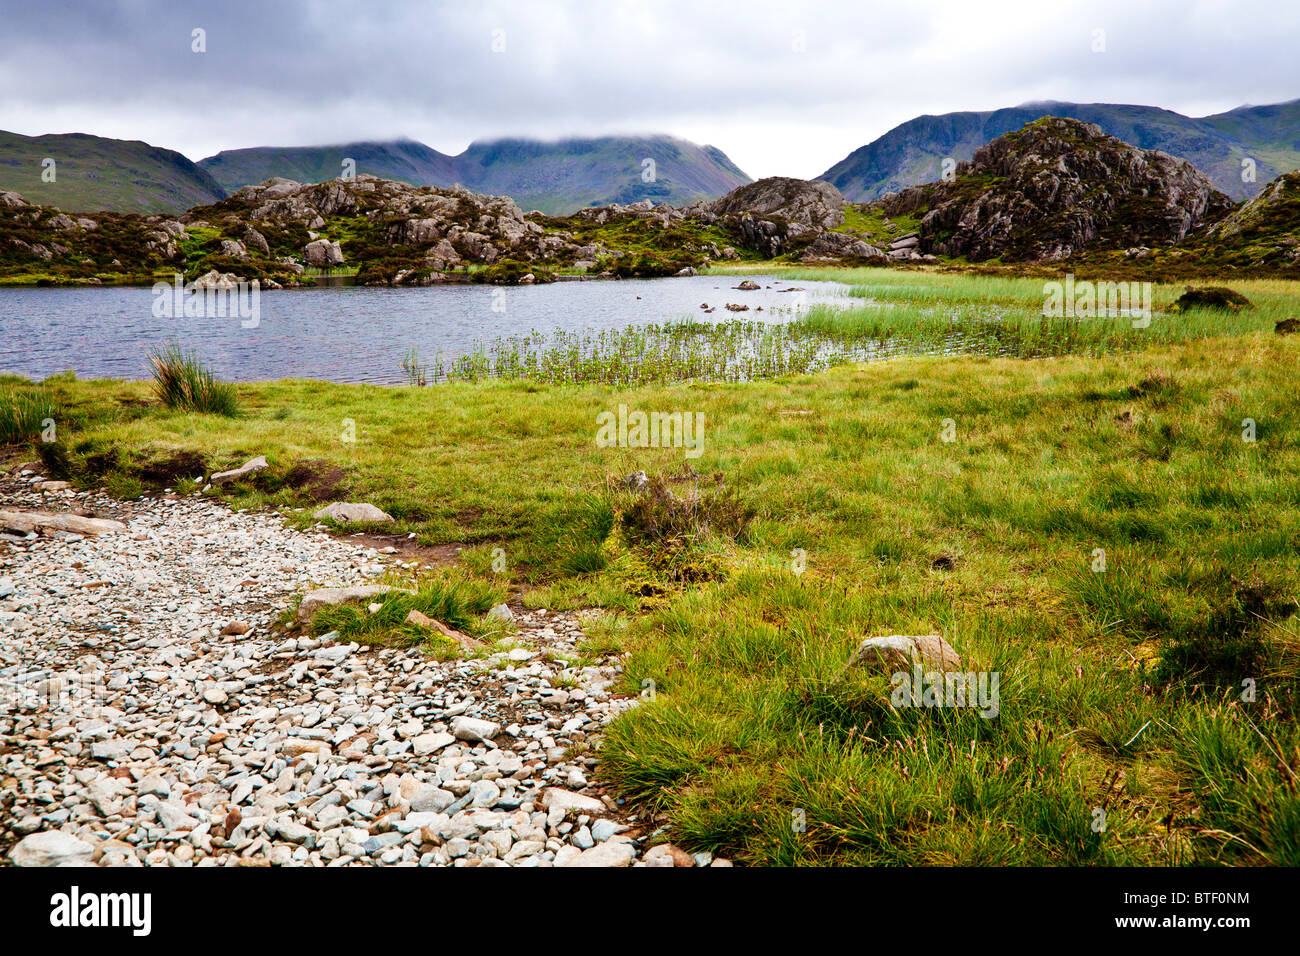 Innominate Tarn on the summit of Haystacks in the Lake District, Cumbria, England, UK Stock Photo